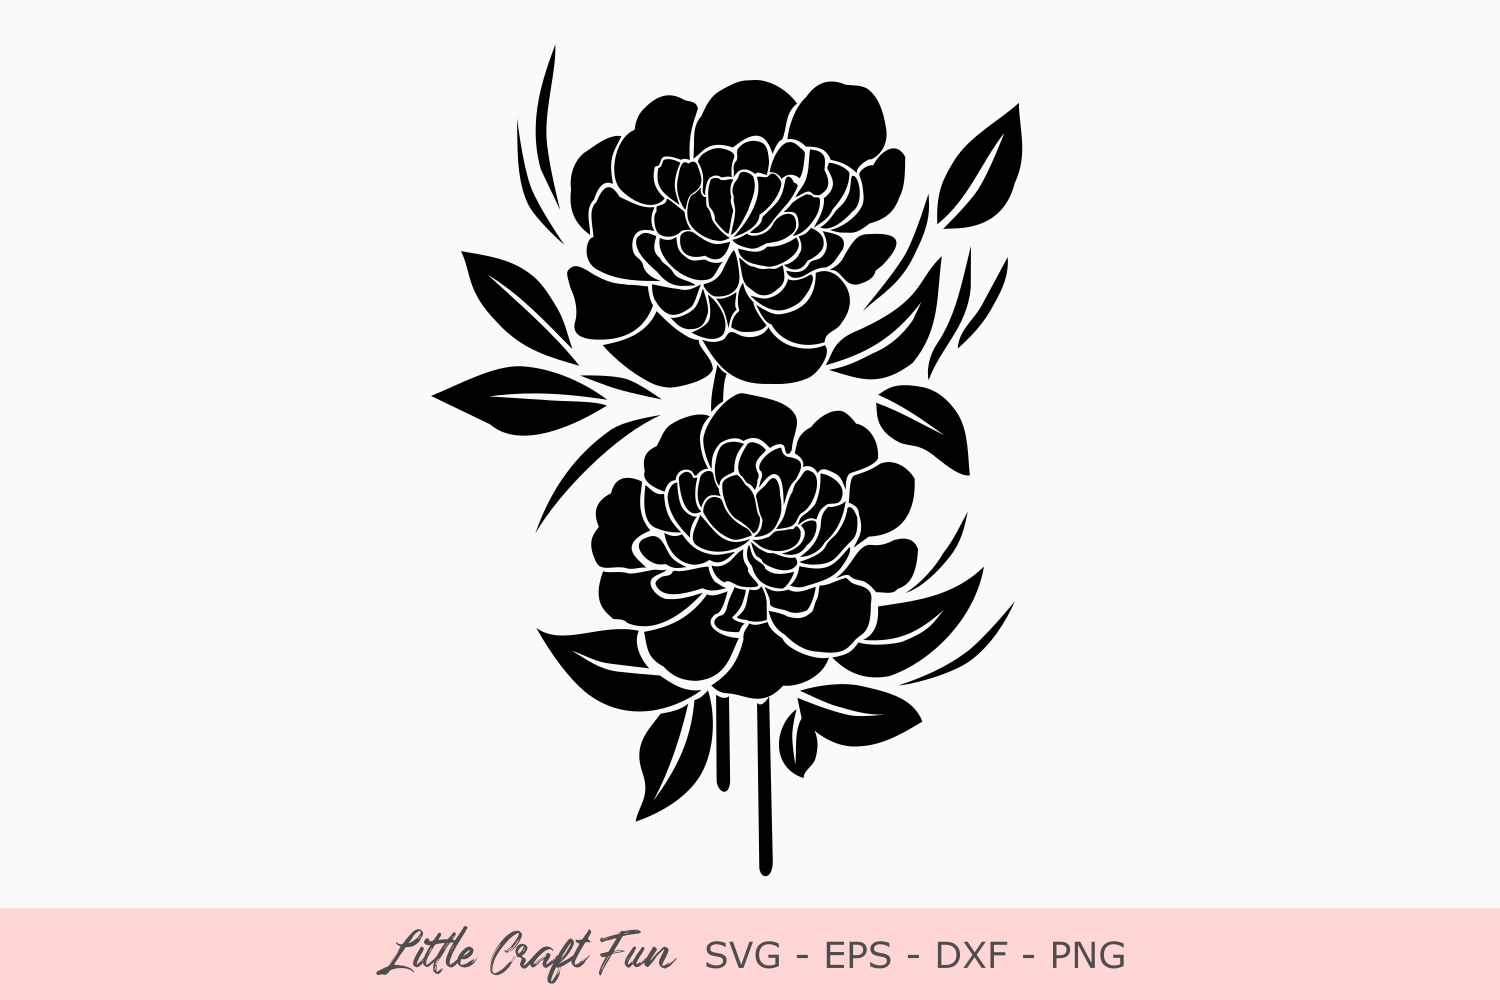 Download Free Peonies Florals Silhouette Svg Graphic By Little Craft Fun Creative Fabrica for Cricut Explore, Silhouette and other cutting machines.